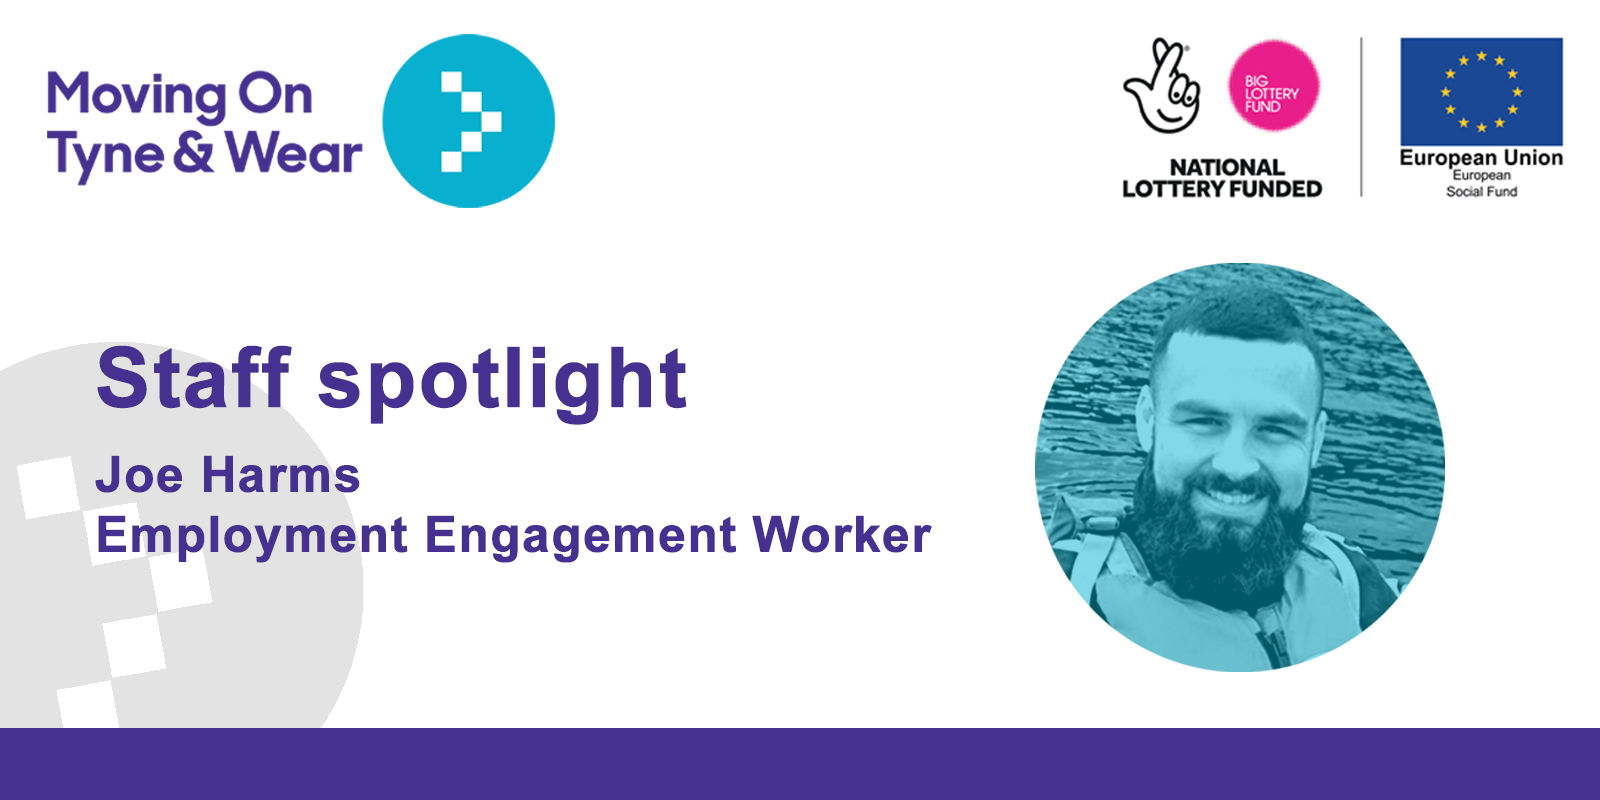 Staff spotlight. Joe Harms, Employment Engagement Worker